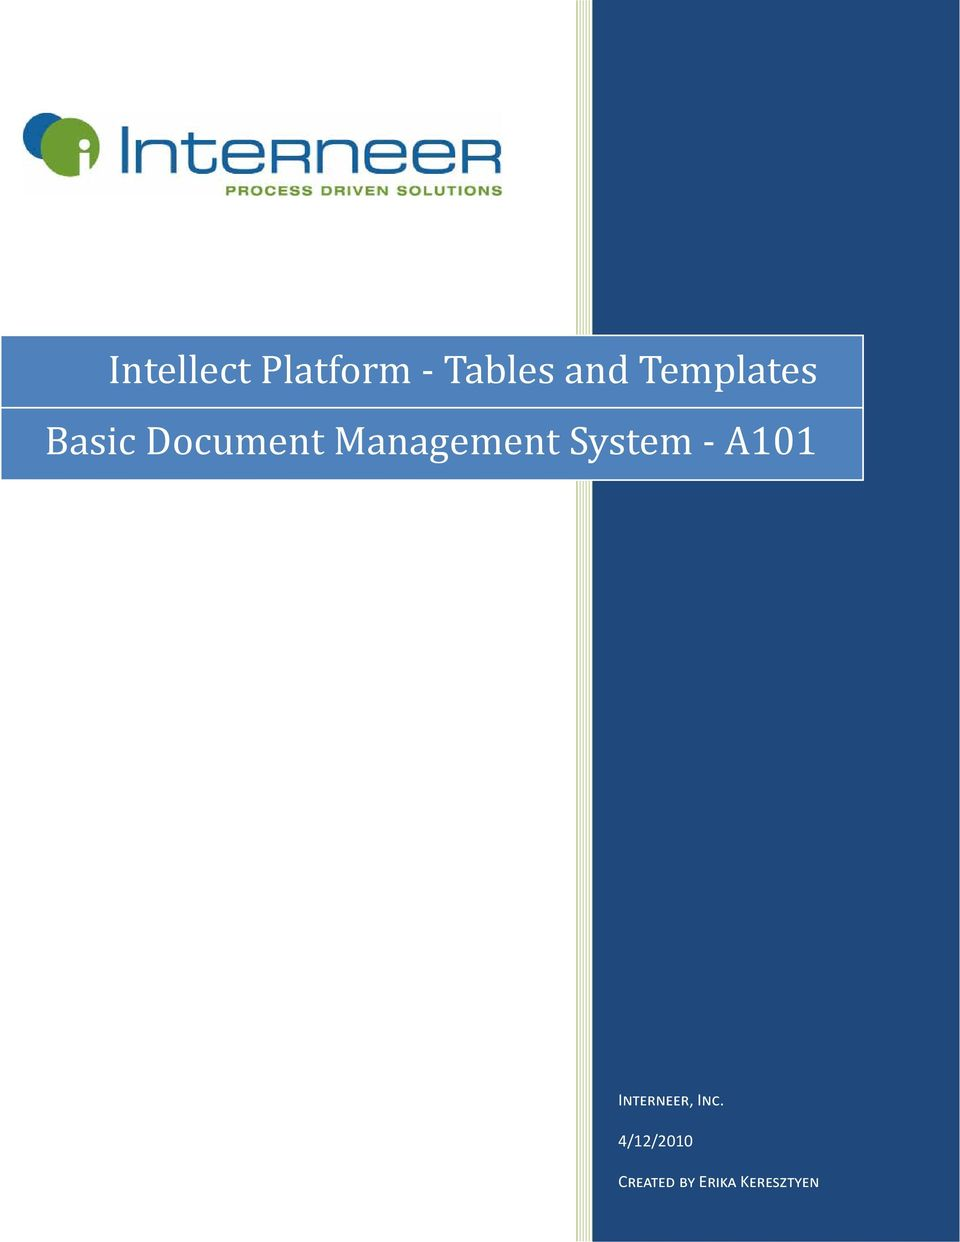 Management System - A101